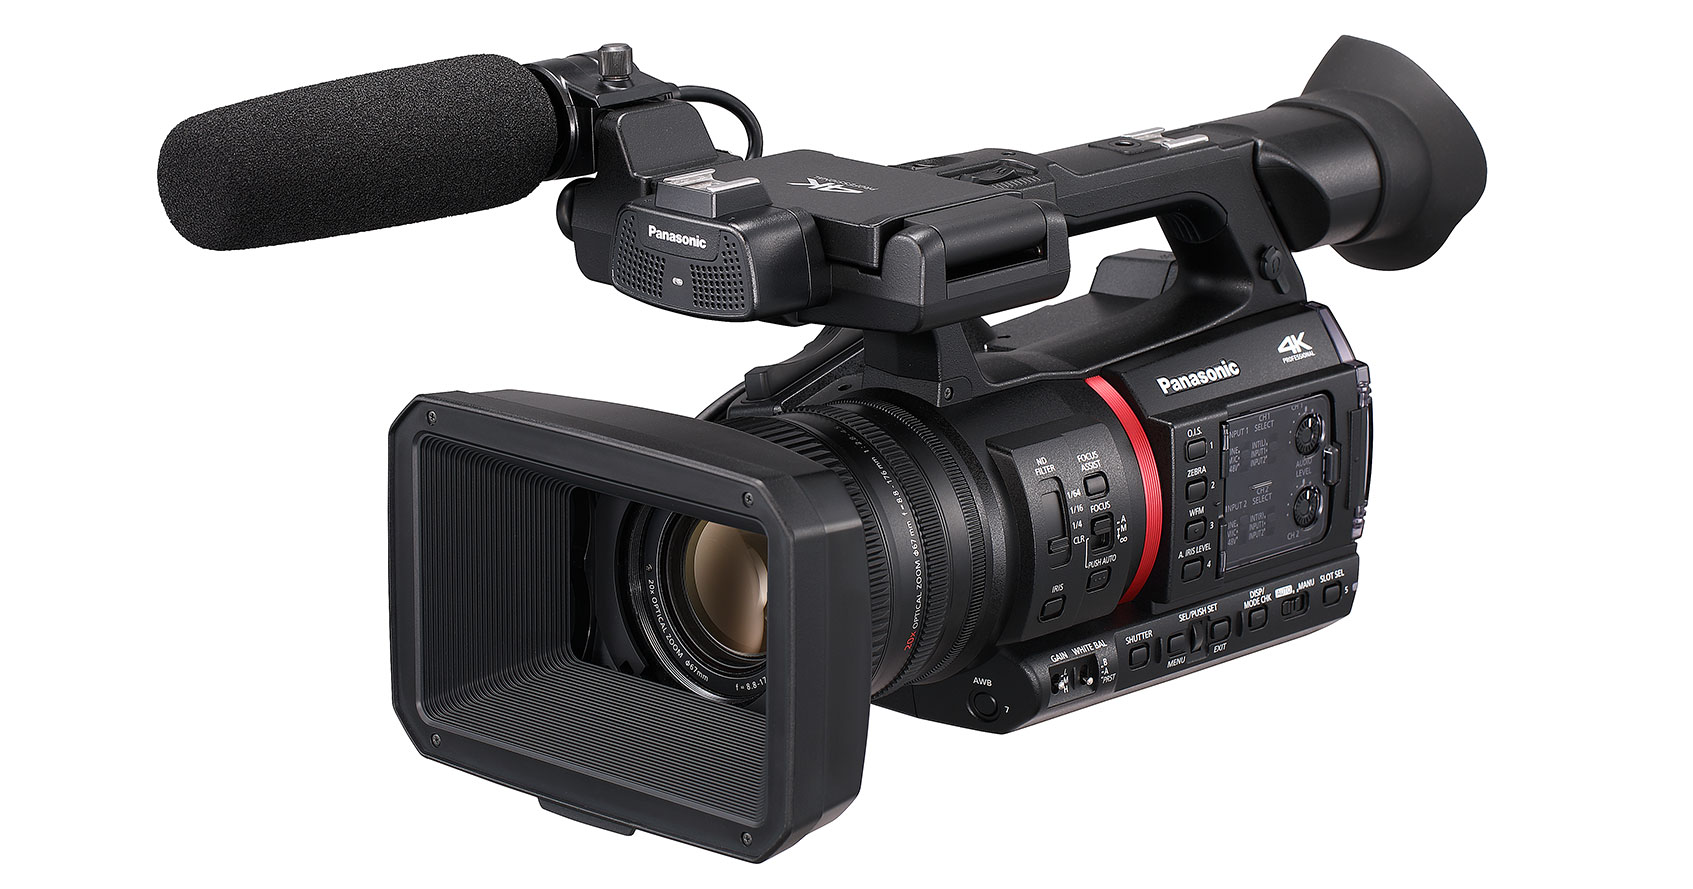 NEWS: Panasonic announces the next generation of camcorders with the AG-CX350